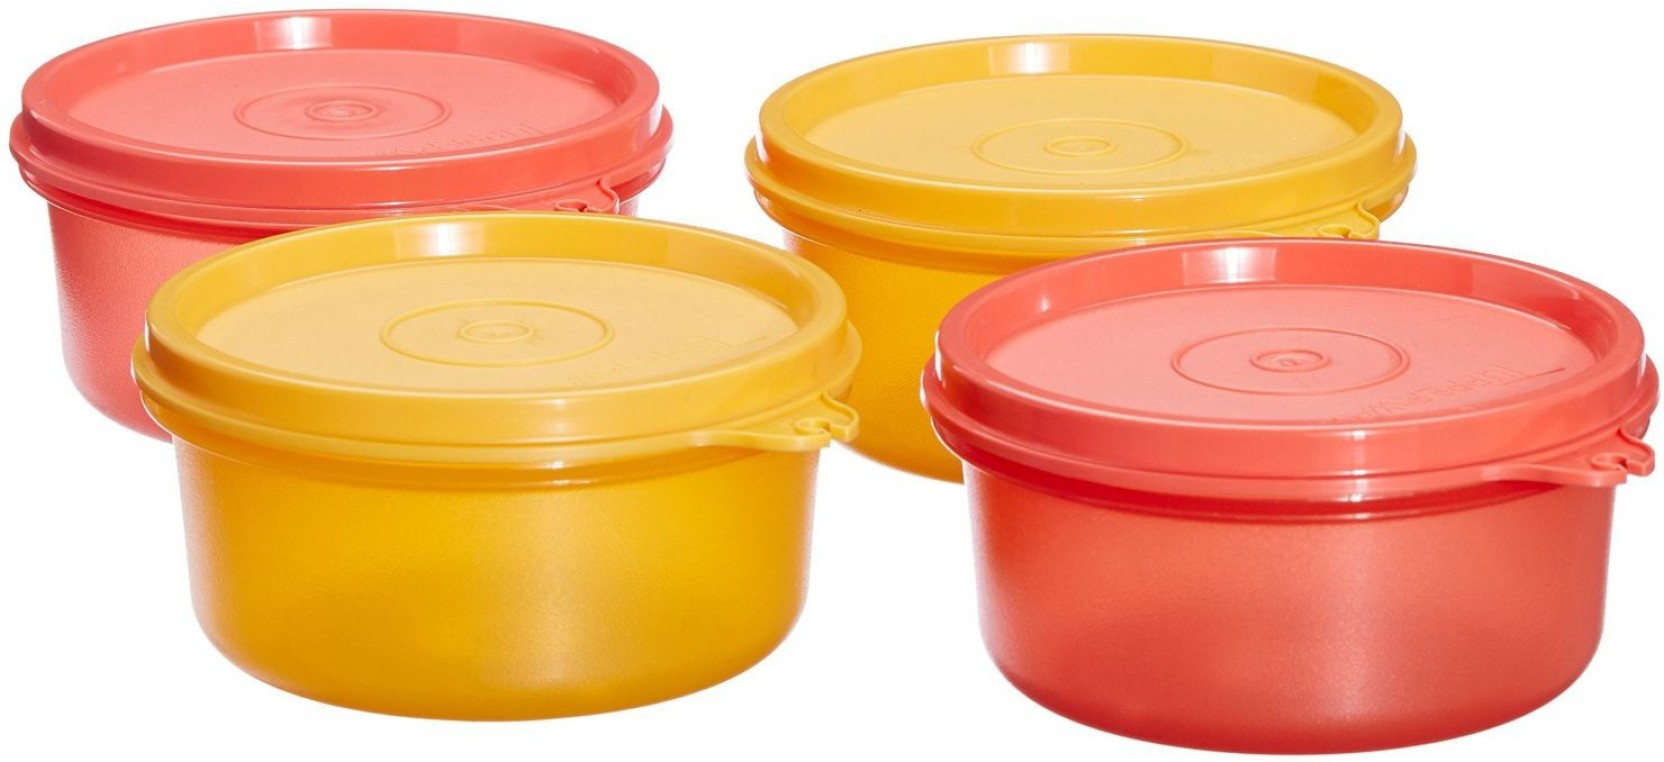 tupperware lunch box 4 containers lunch box. Black Bedroom Furniture Sets. Home Design Ideas